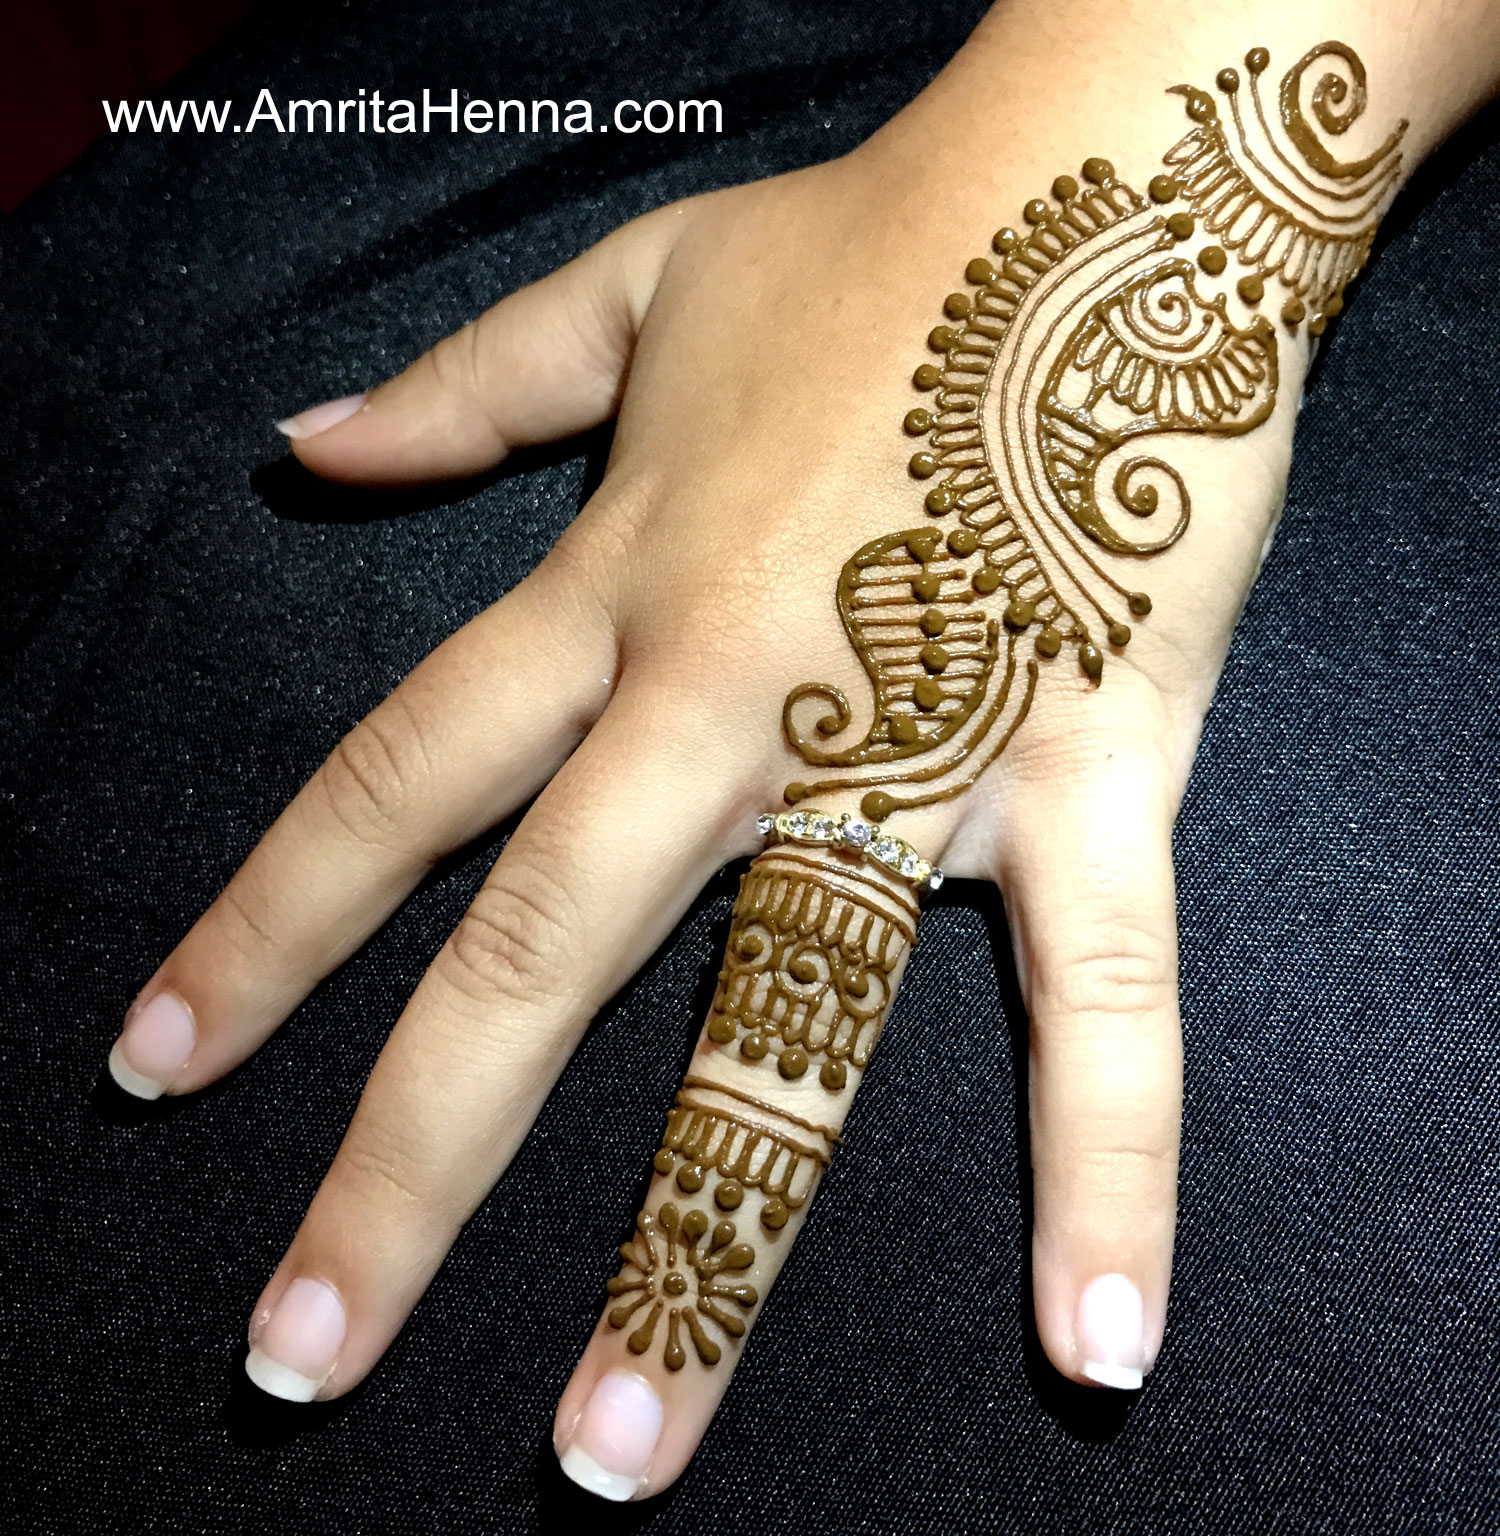 TOP 10 HENNA DESIGNS FOR A GIRLS NIGHT - 10 BEST MEHNDI DESIGNS FOR A GIRLS GET TOGETHER - STUNNING MEHENDI DESIGN IDEAS FOR A GIRLS PARTY - TOP 10 MEHANDI DESIGNS FOR A GIRLS WEEKEND PARTY - 10 COOL HENNA DESIGNS FOR YOUR AND YOUR FRIENDS - TOP 10 GIRLS PARTY IDEAS - 10 BEST GIRLY NIGHT IDEAS - TOP 10 THINGS TO DO IDEAS FOR A GIRLS PARTY - HENNA DESIGNS FOR A GIRLS GANG - GIRLY THINGS IDEAS - TOP 10 HENNA DESIGNS FOR A CHICK BASH